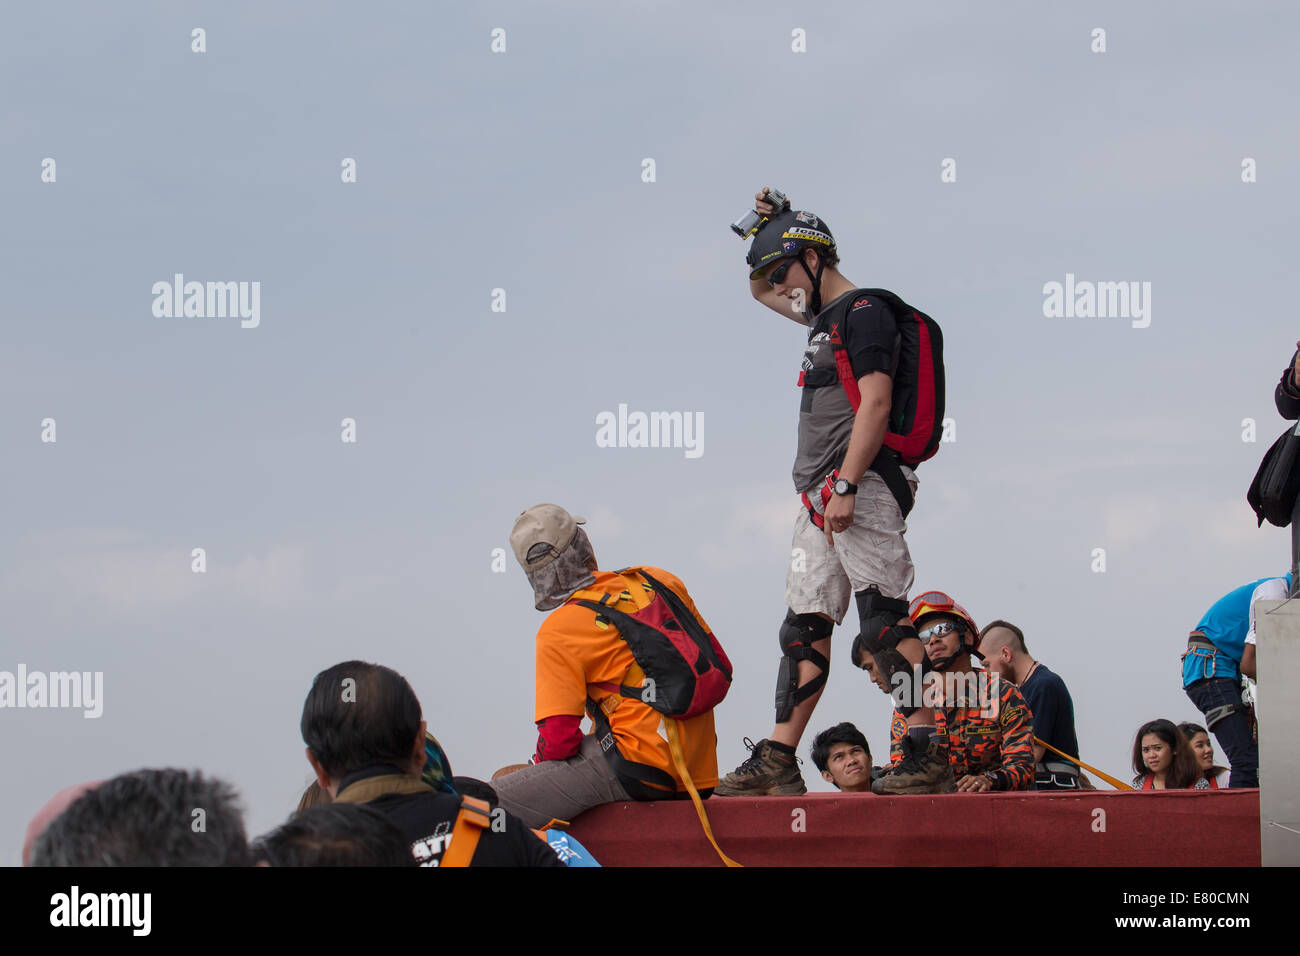 Kuala Lumpur, Malaysia. 27th Sept, 2014. KL Tower BASE Jump 2014 is an annual event of the Kuala Lumpur tower which - Stock Image